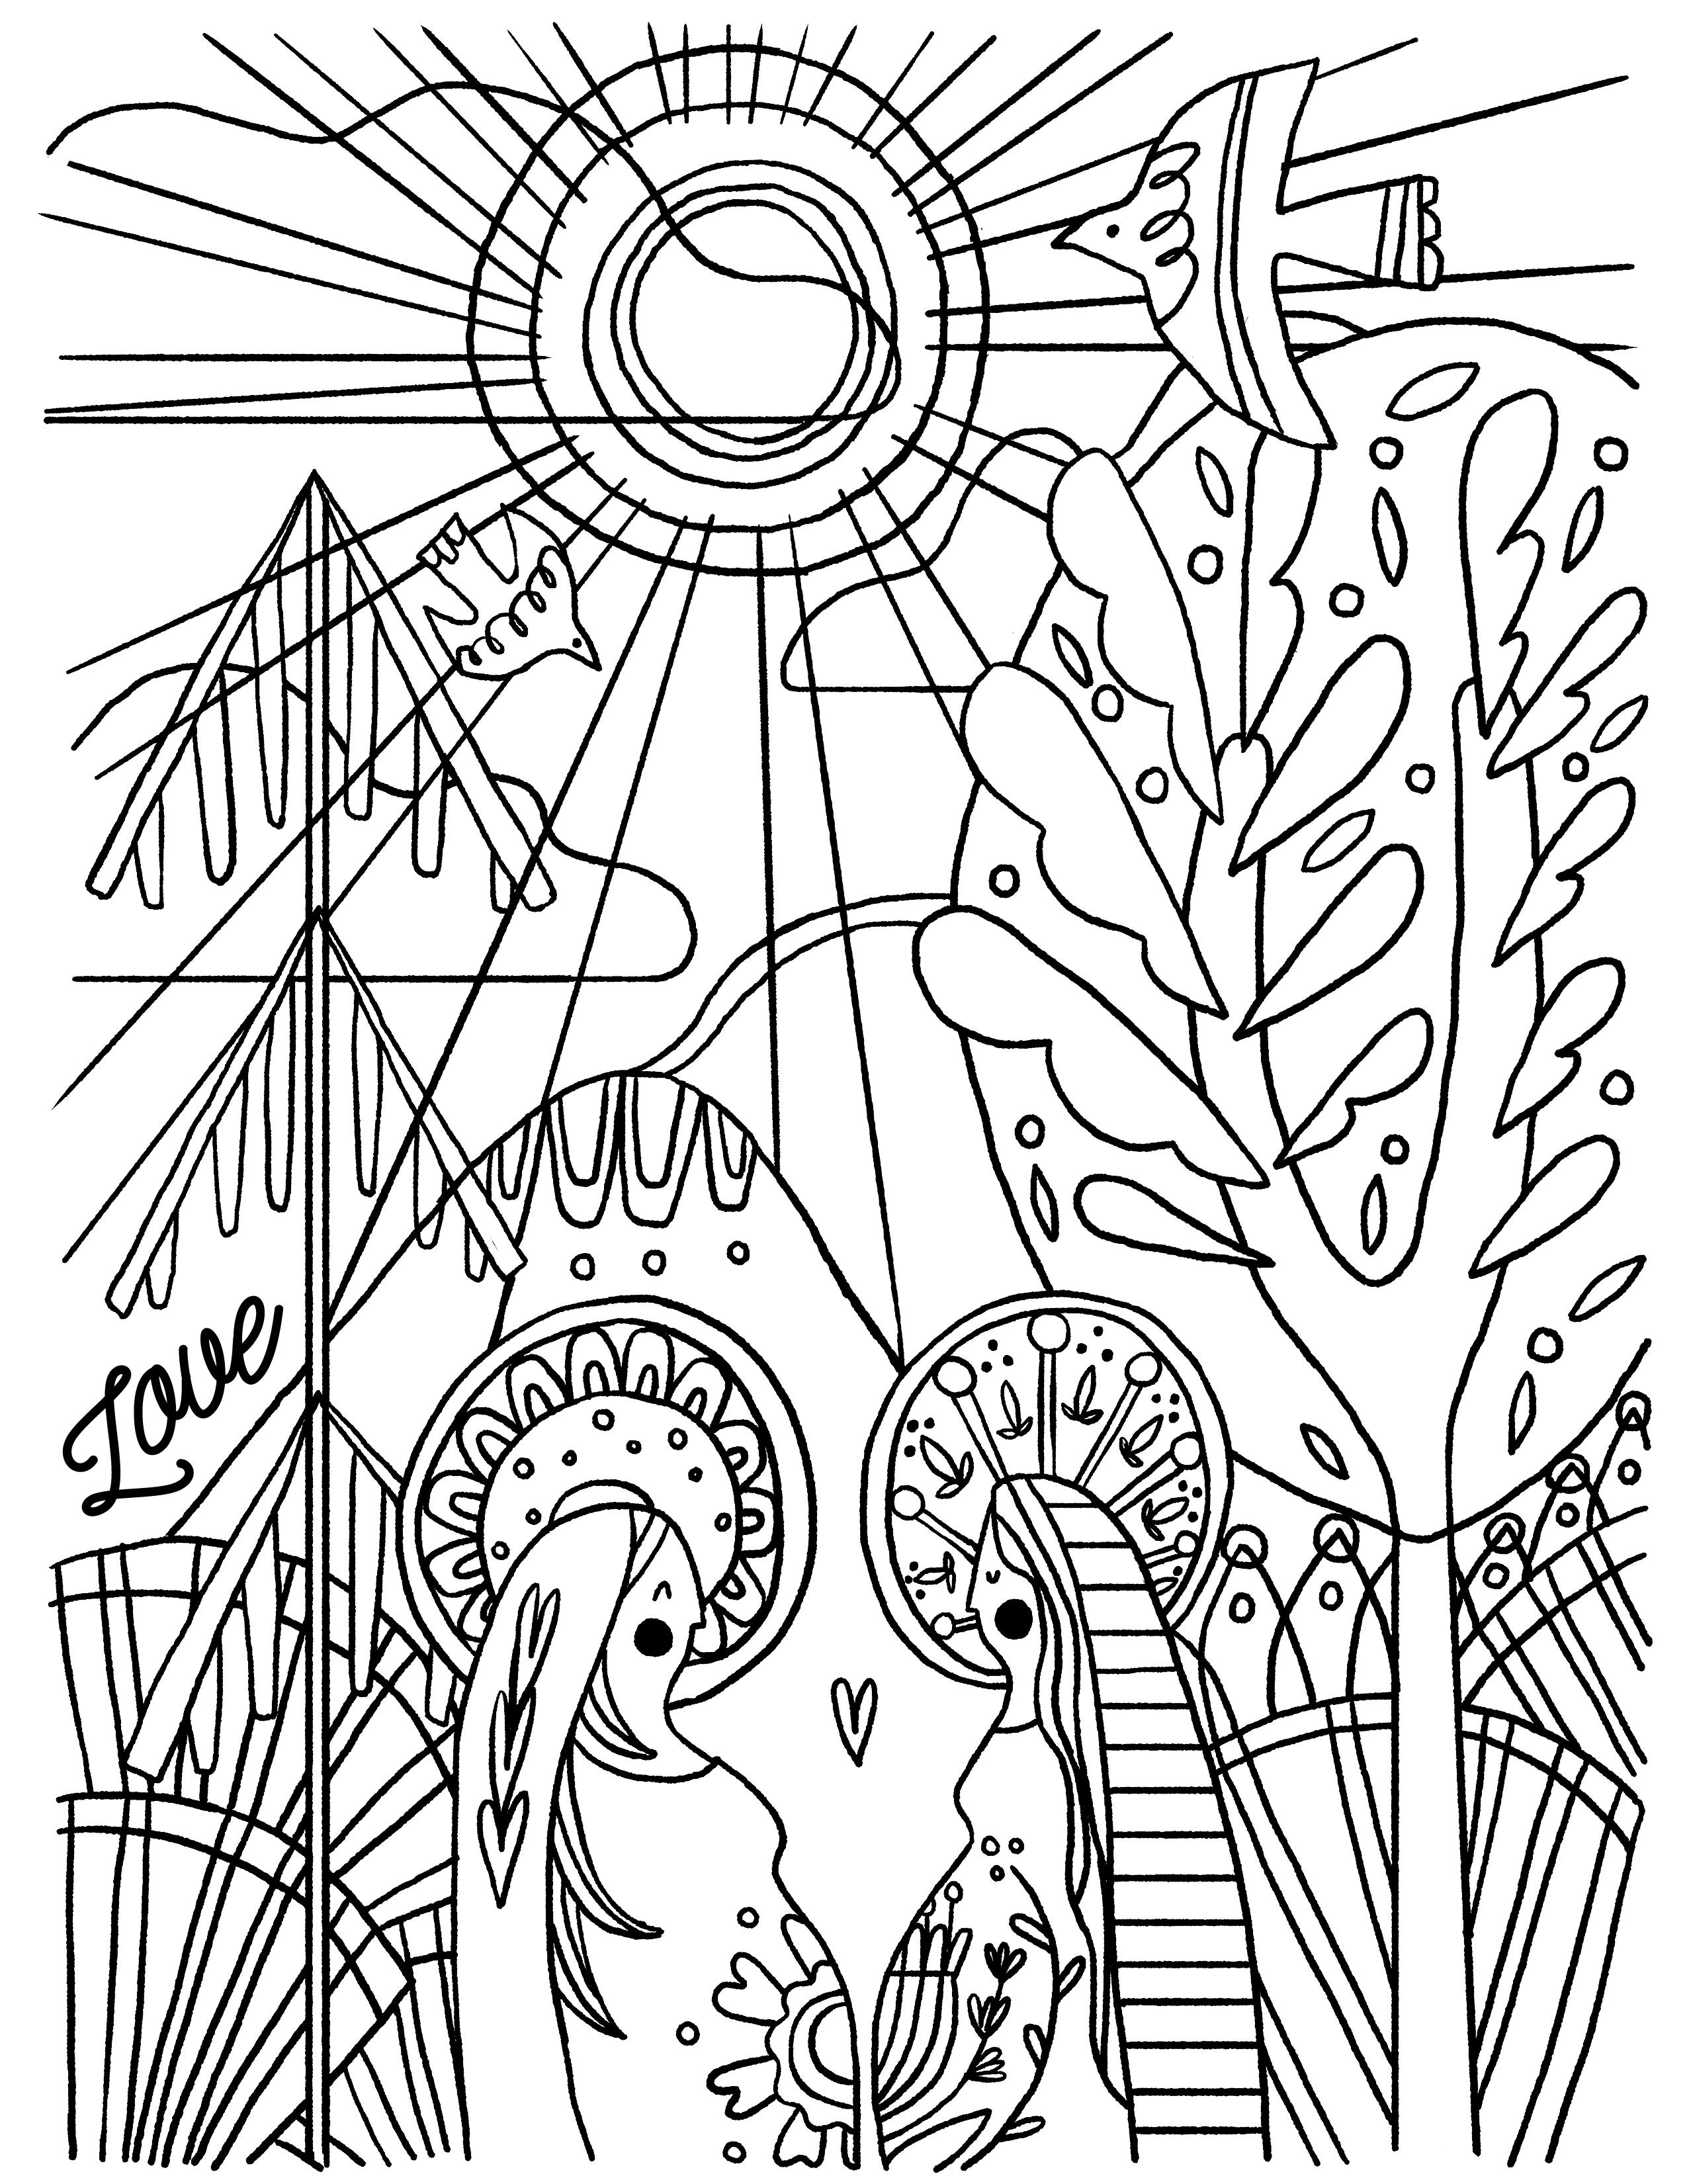 advent coloring pages joy - photo#20